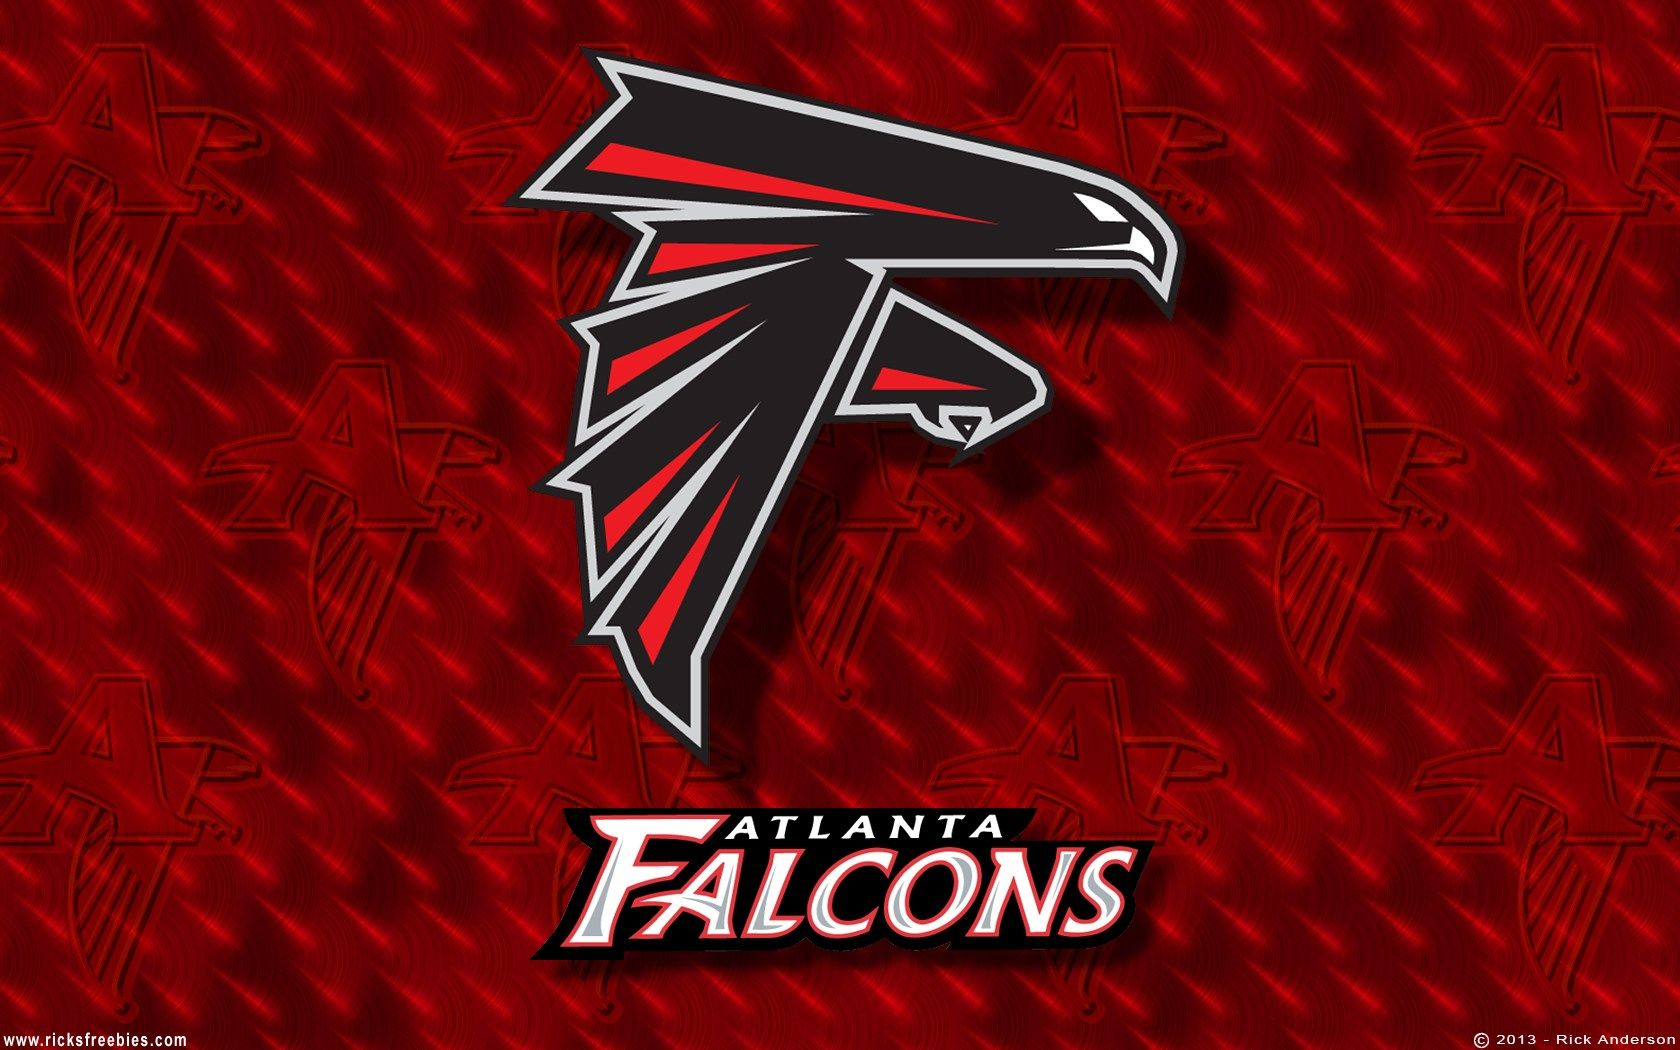 Most Beautiful Atlanta Falcons Wallpaper Atlanta Falcons Wallpaper Atlanta Falcons Football Atlanta Falcons Logo